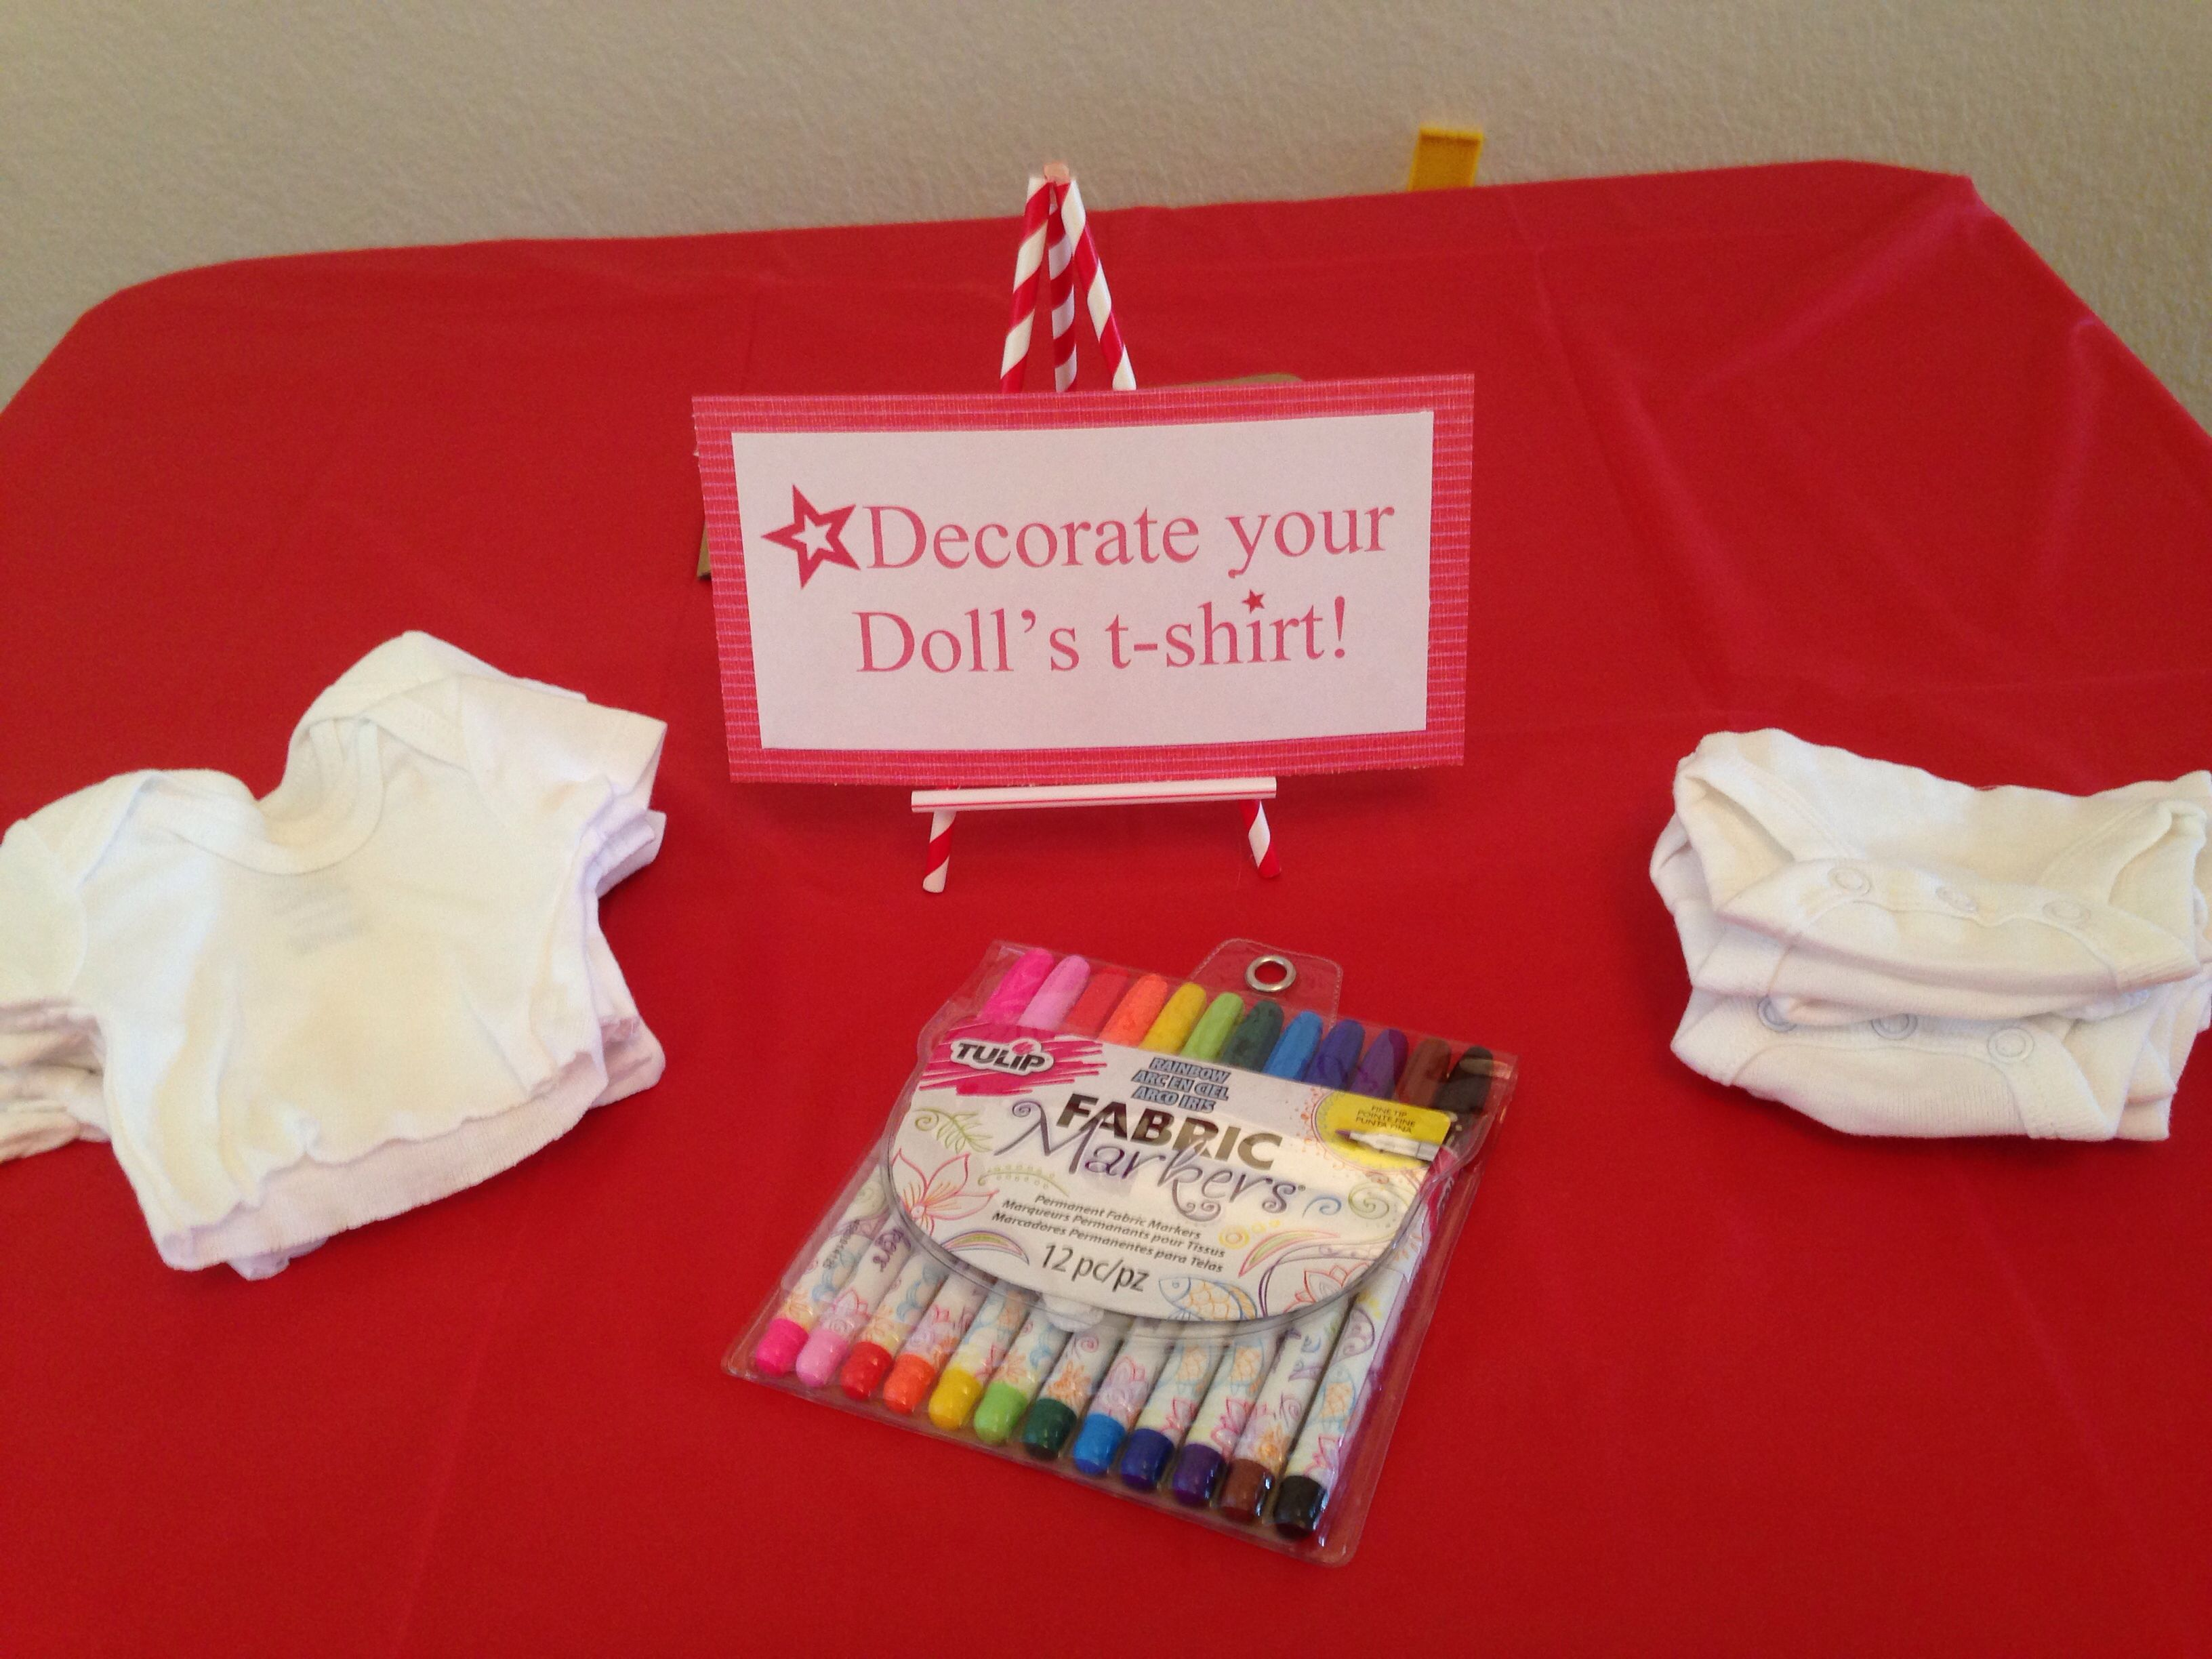 Design your own t-shirt birthday party - 17 Best Ideas About Decorate T Shirts On Pinterest Sharpie Shirts Sharpie T Shirts And Sharpie Tie Dye